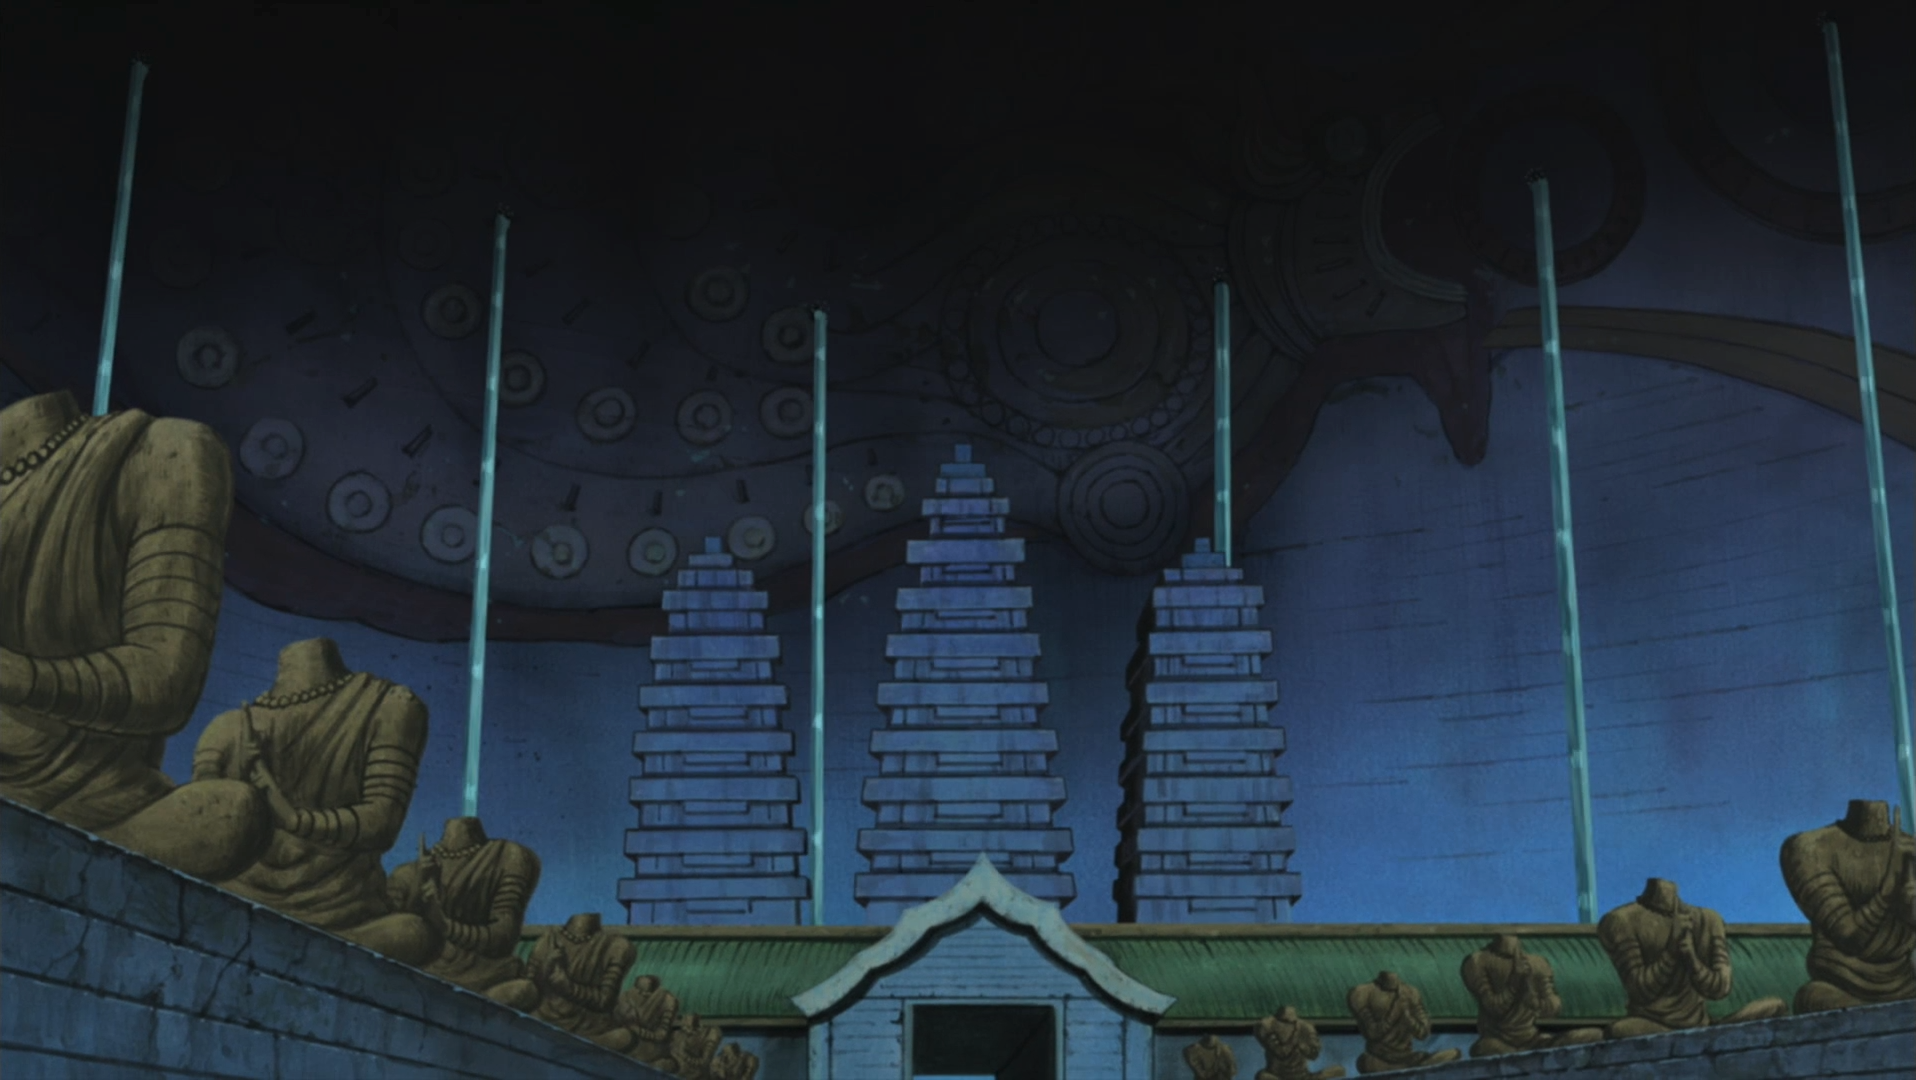 http://static1.wikia.nocookie.net/__cb20120119121352/naruto/images/a/a7/Hachib_mural.png